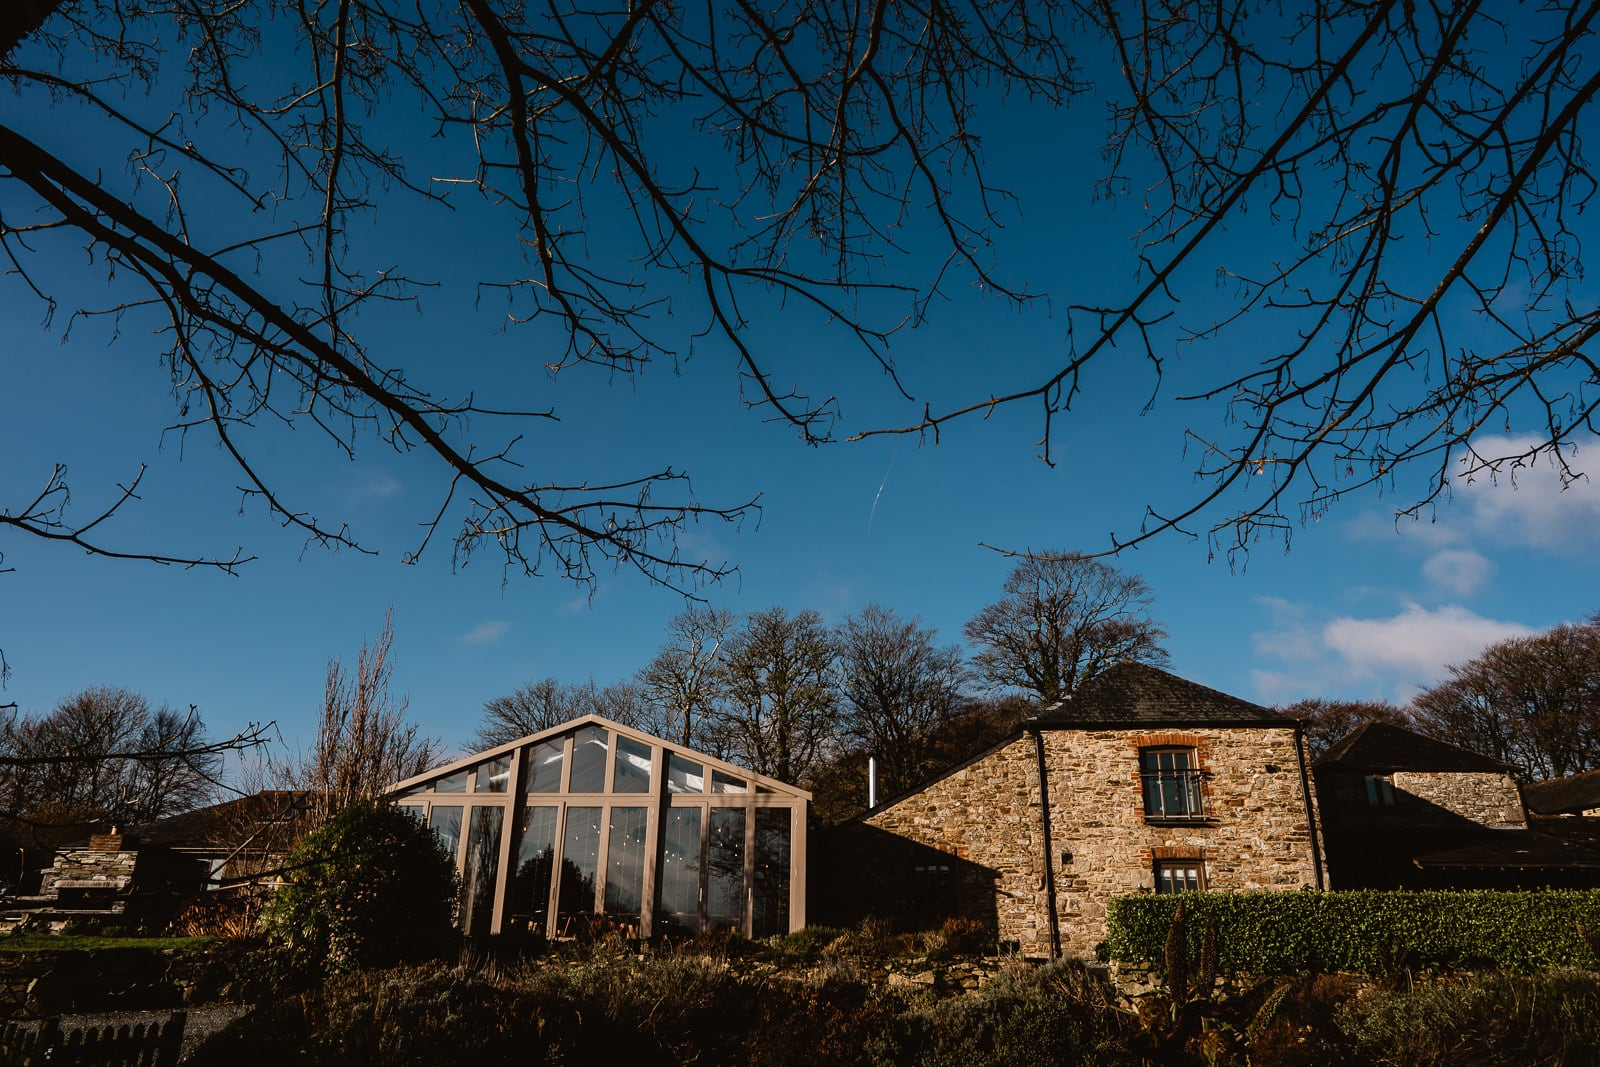 The Threshing Barn and Garden Venue room at Trevenna Barns Wedding Venue, in the early morning winter light